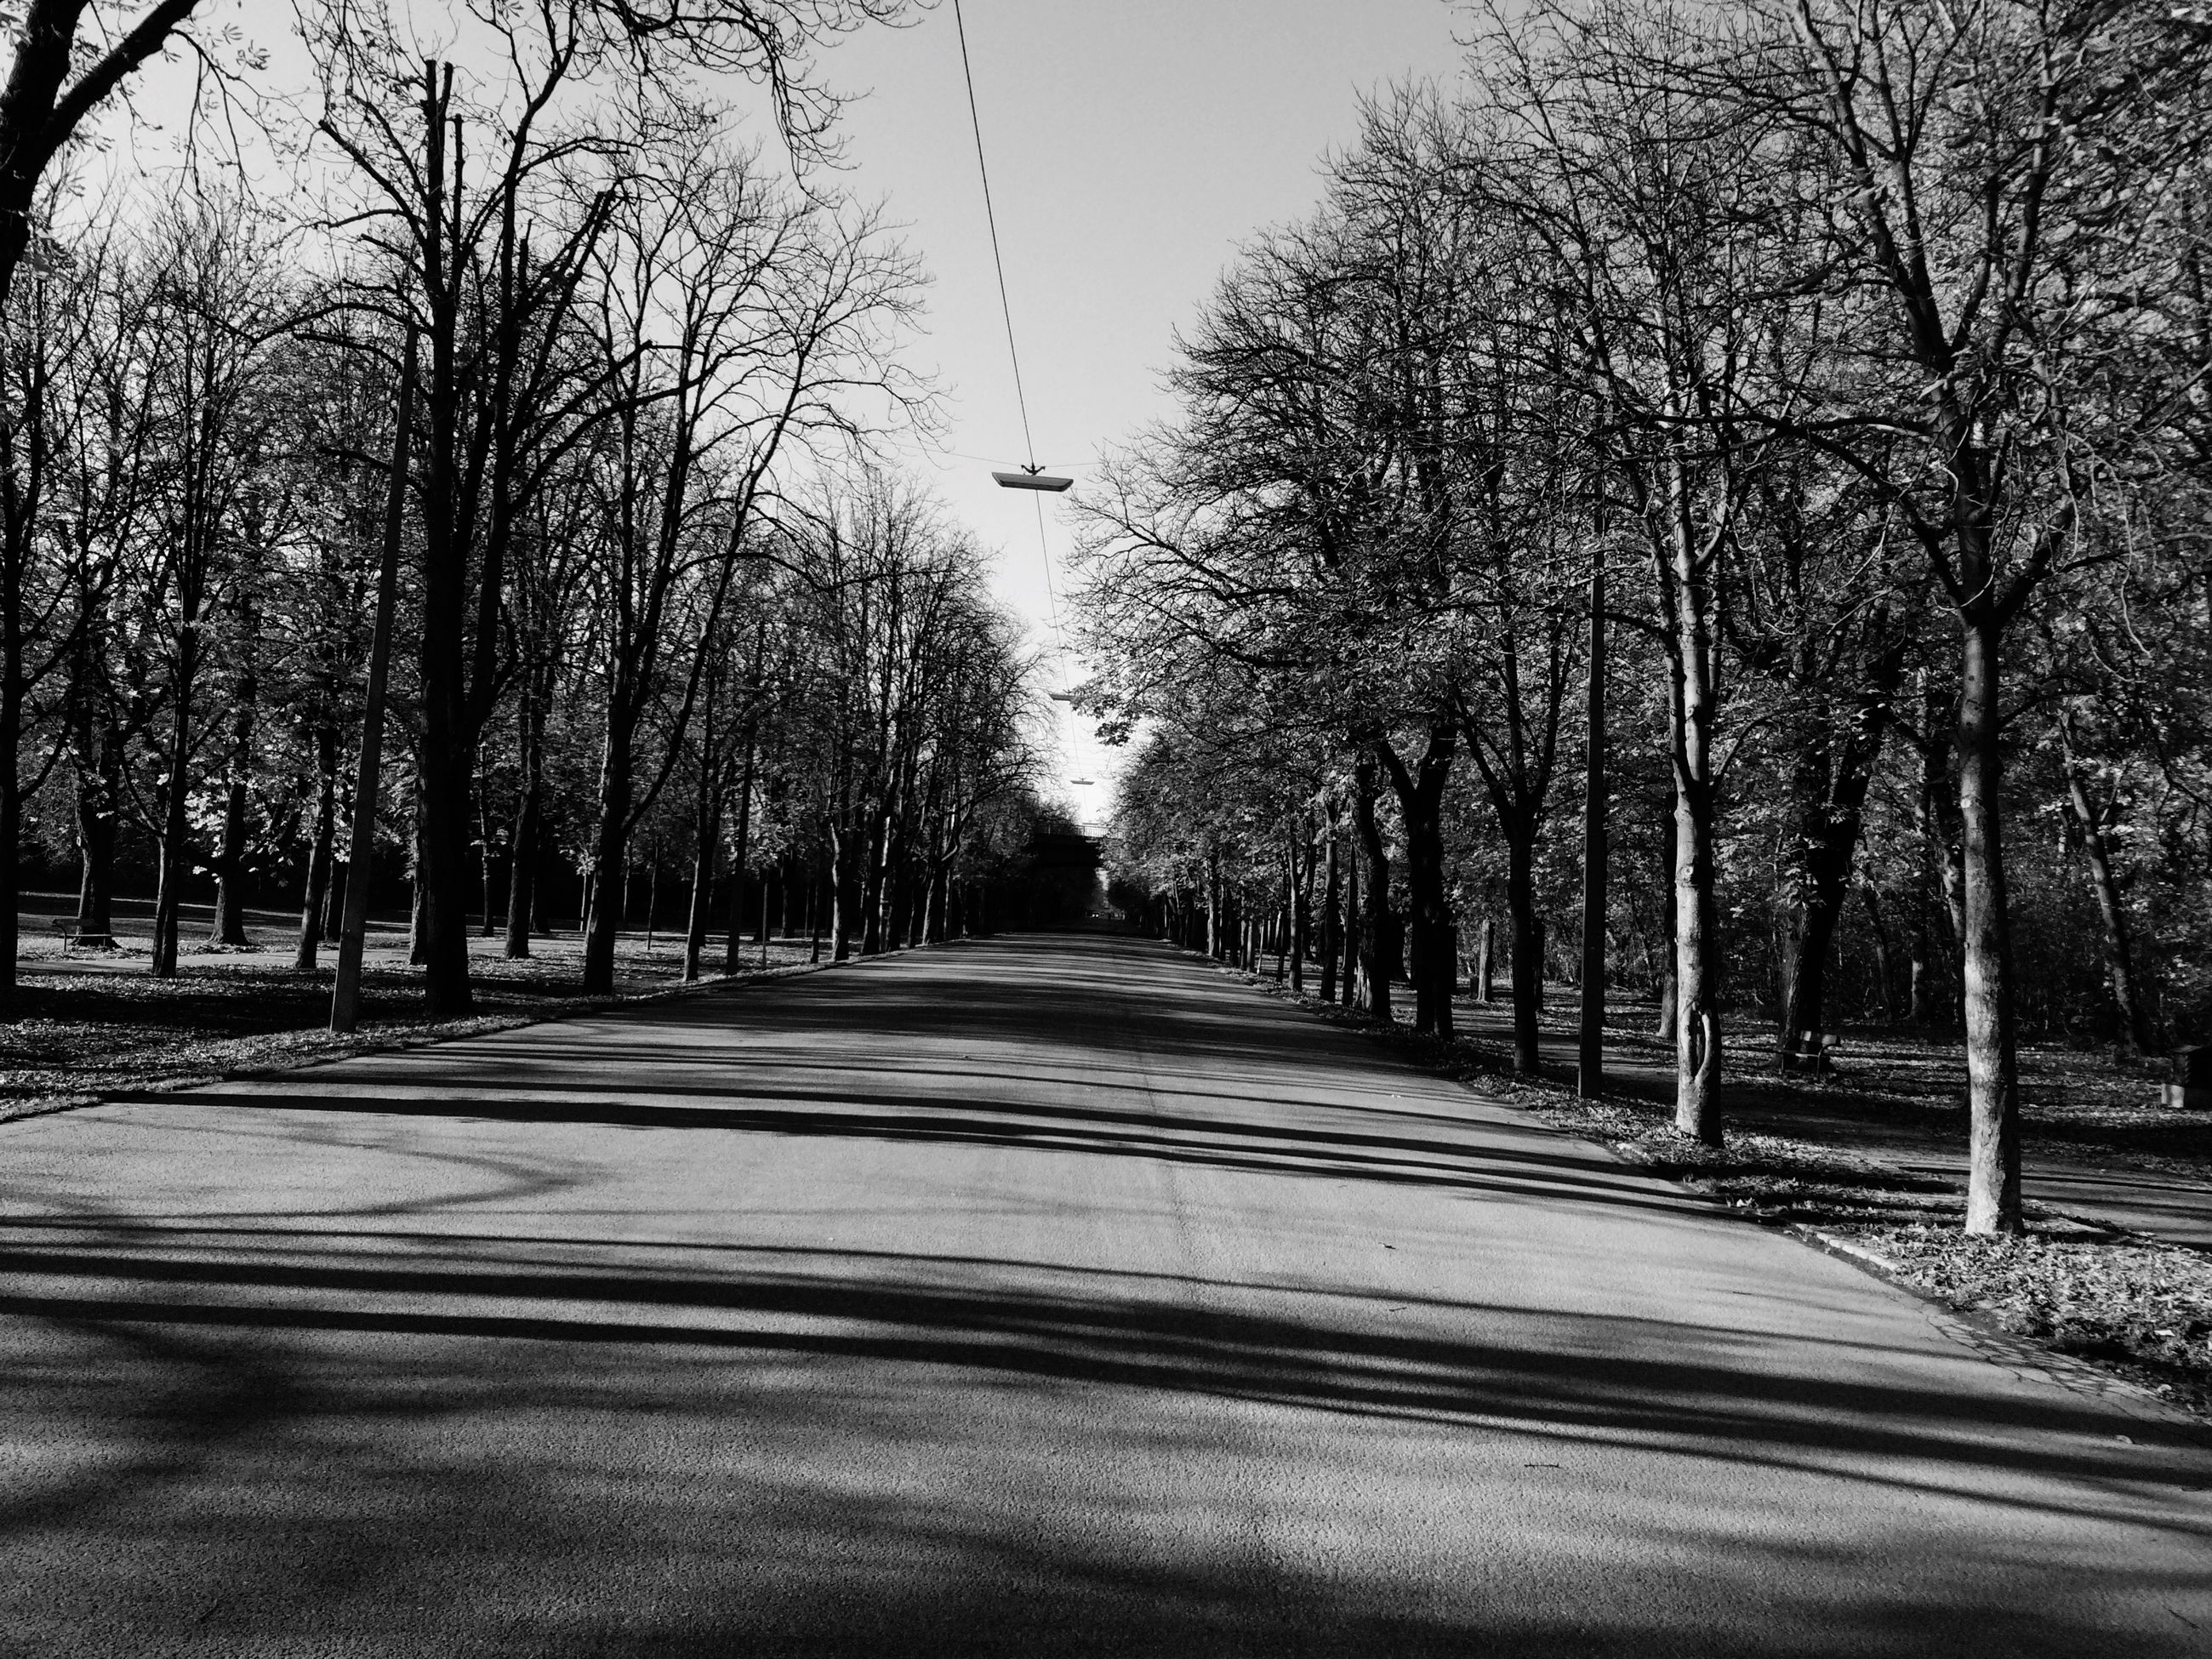 tree, the way forward, bare tree, diminishing perspective, vanishing point, treelined, tranquility, transportation, road, branch, tranquil scene, empty, long, nature, tree trunk, sky, empty road, clear sky, growth, scenics